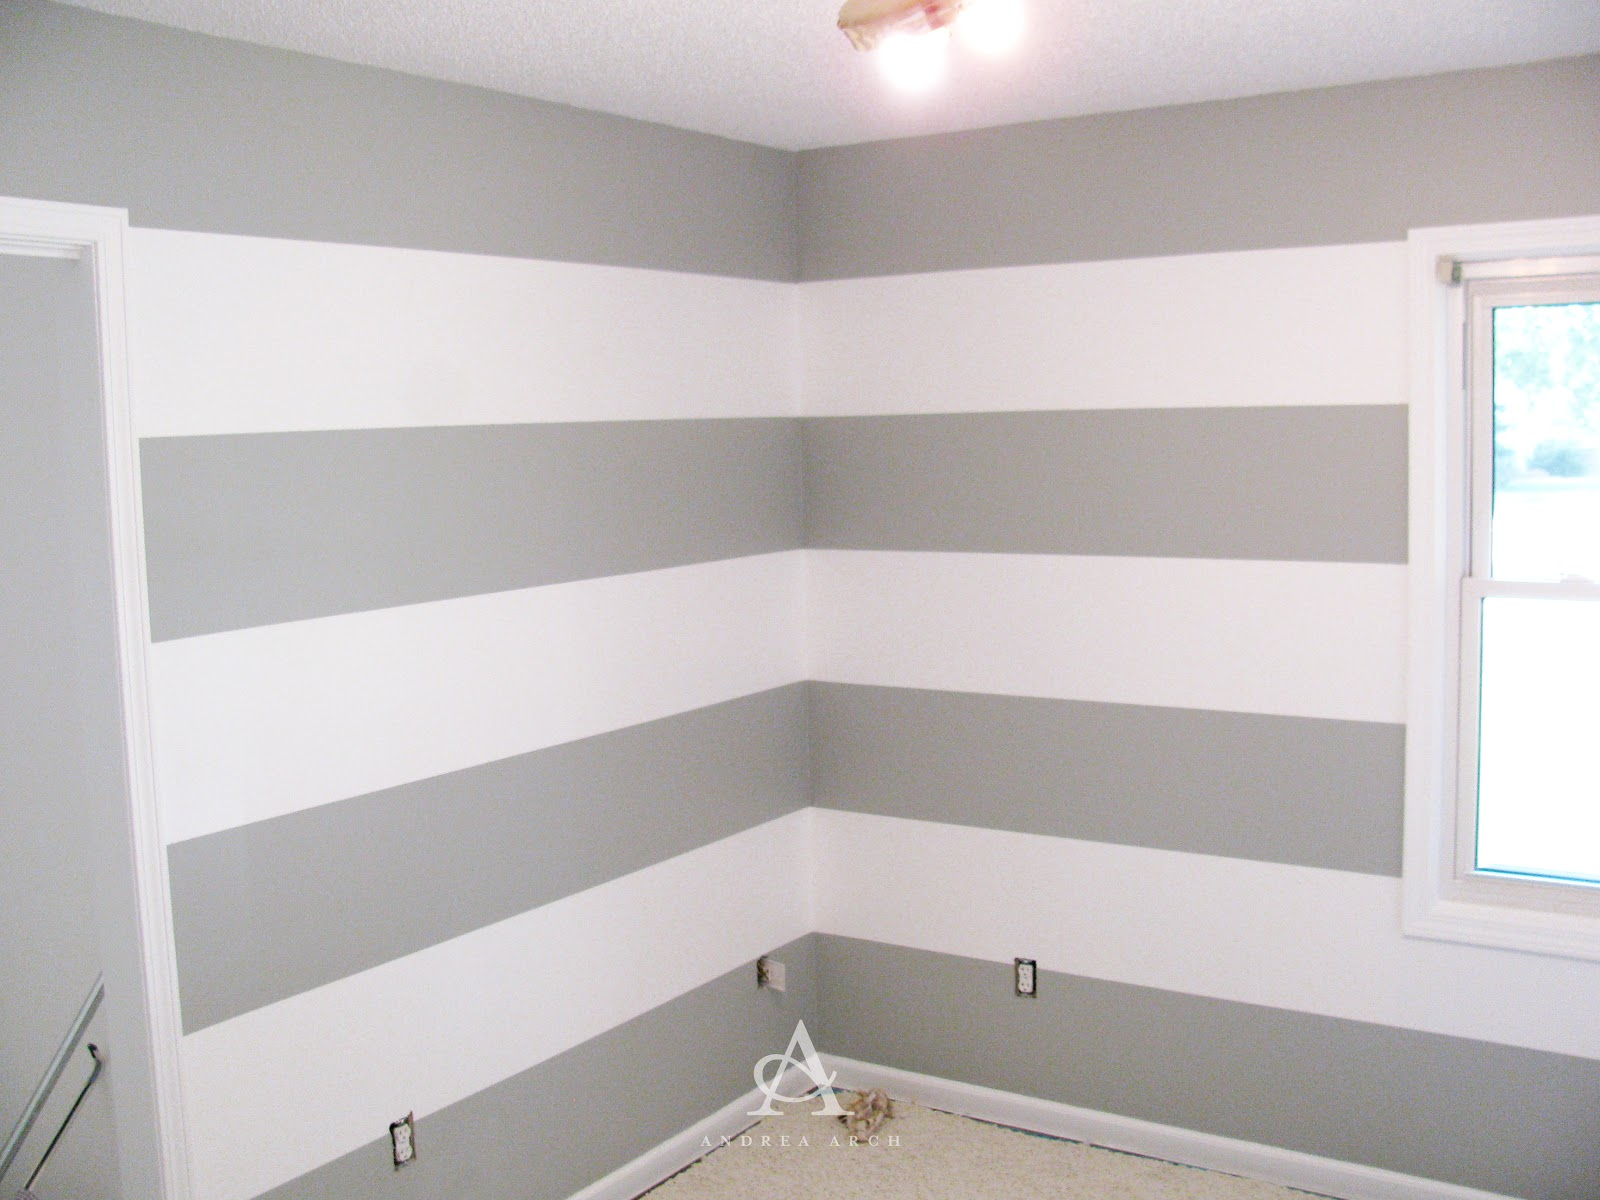 Andrea Arch DIY How to paint perfect wall stripes